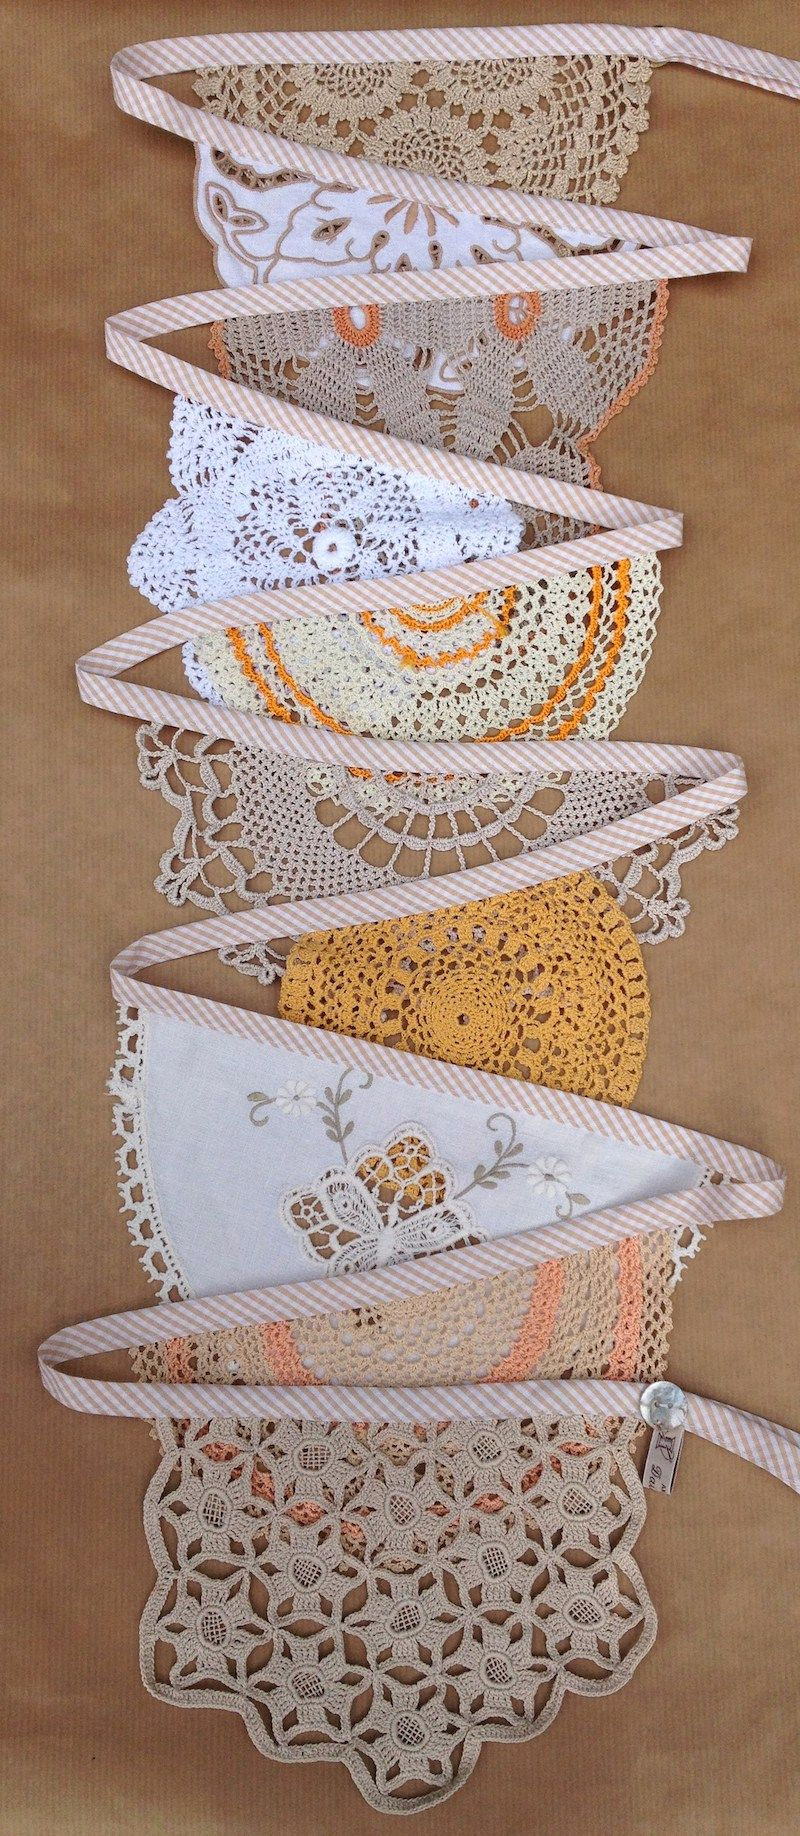 Everybody dreams of those garden parties and back yard evenings during summer. To make the feeling super special, I would collect vintage doilies from fleamarkets all summer and sew them into a loooooong garland bunting. This is a sport of great distances. Three or five meters is nothing. Go for 30 or 50m. You´ll …